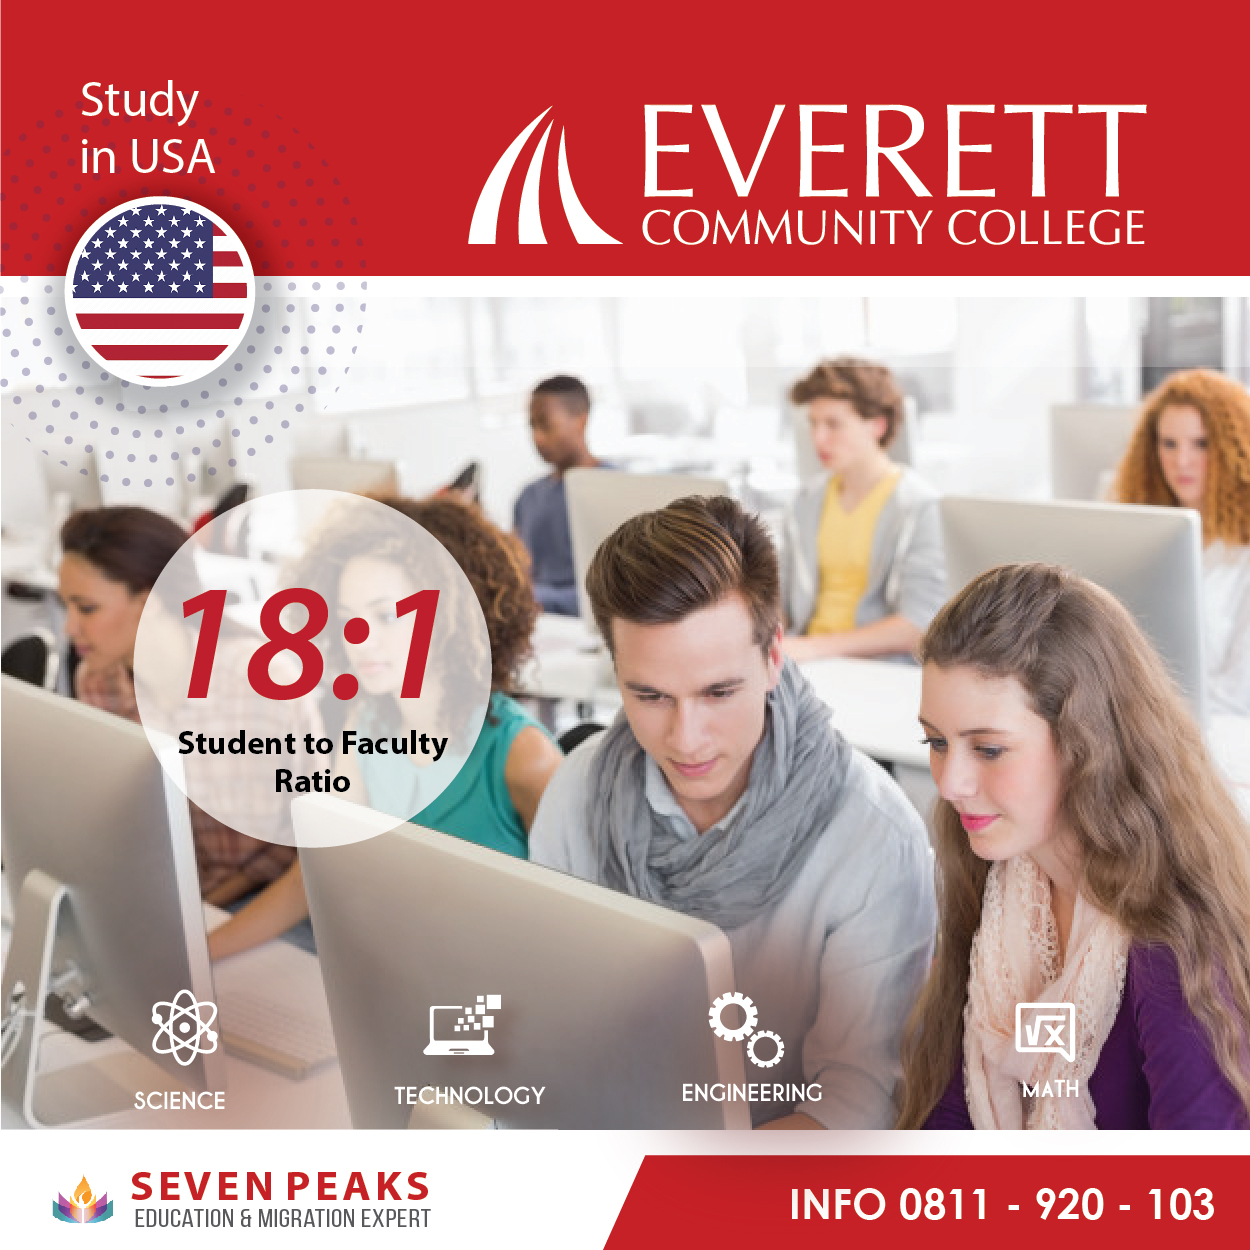 Everett Community College, Ada Program Jurusan S.T.E.M